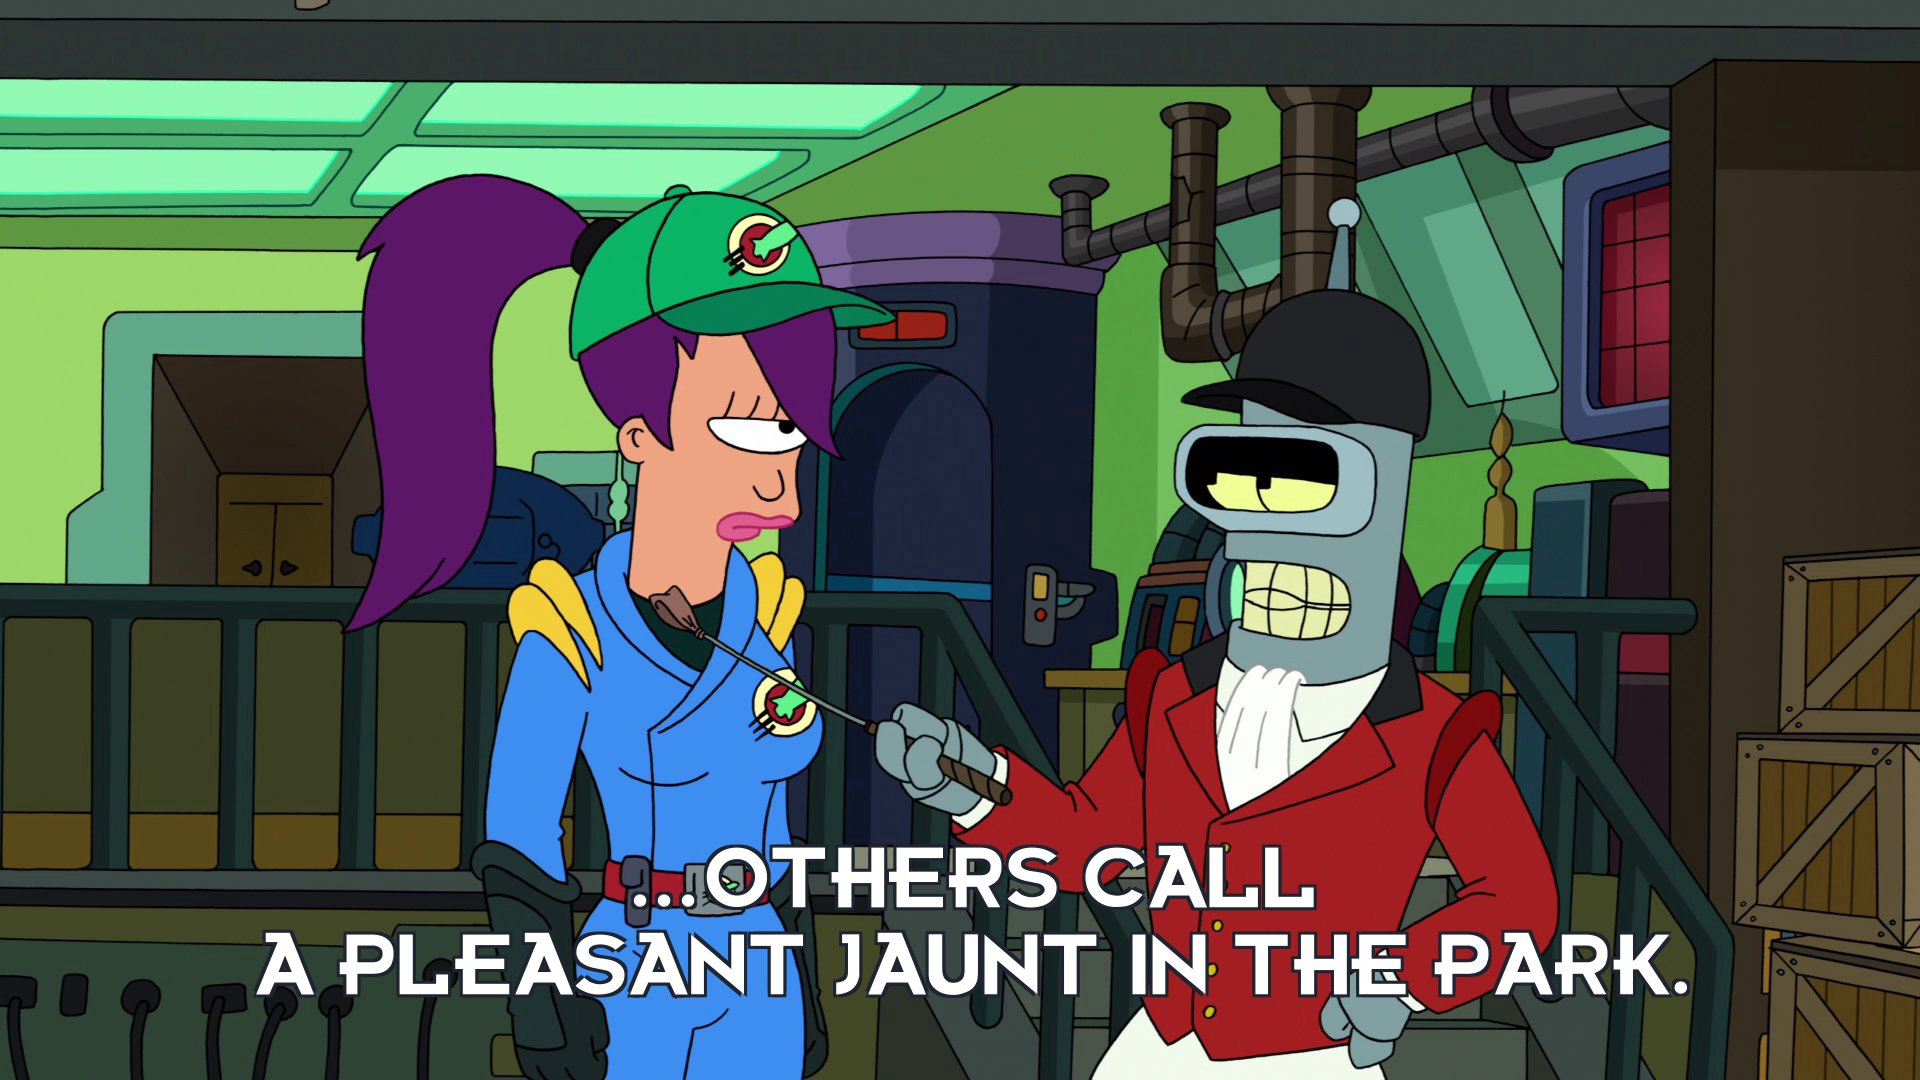 Bender Bending Rodriguez: ...others call a pleasant jaunt in the park.